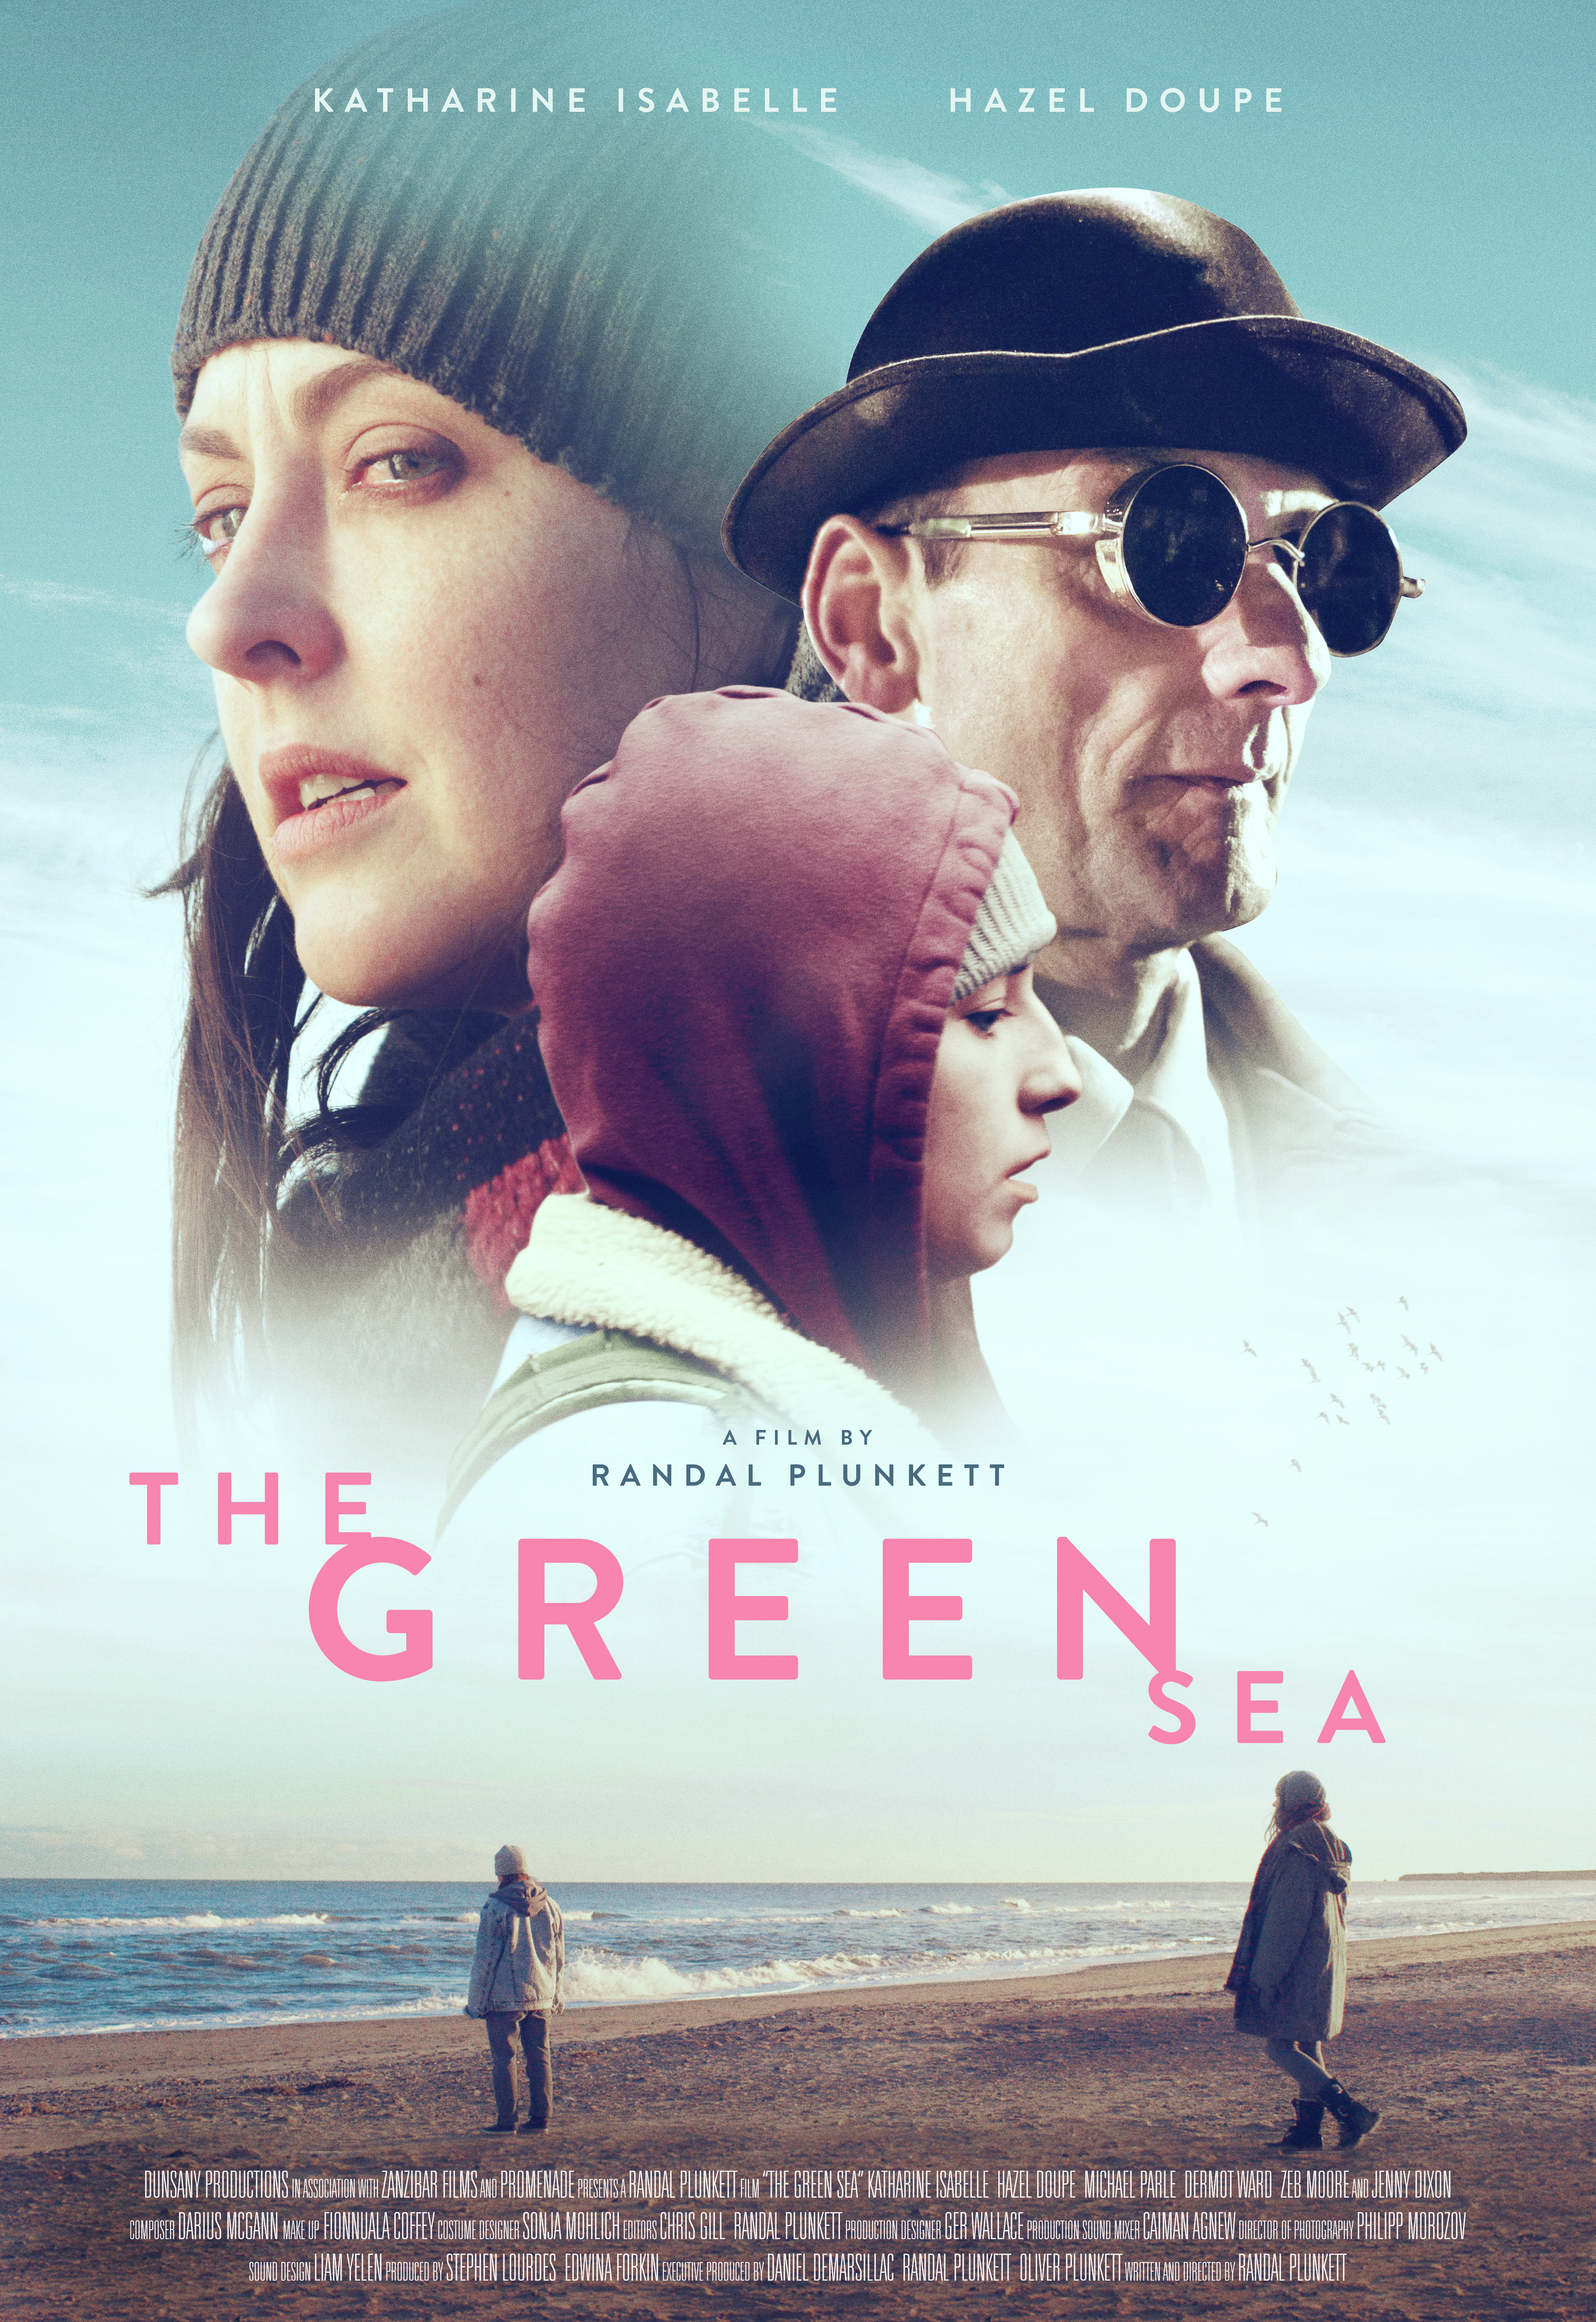 The Green Sea poster image